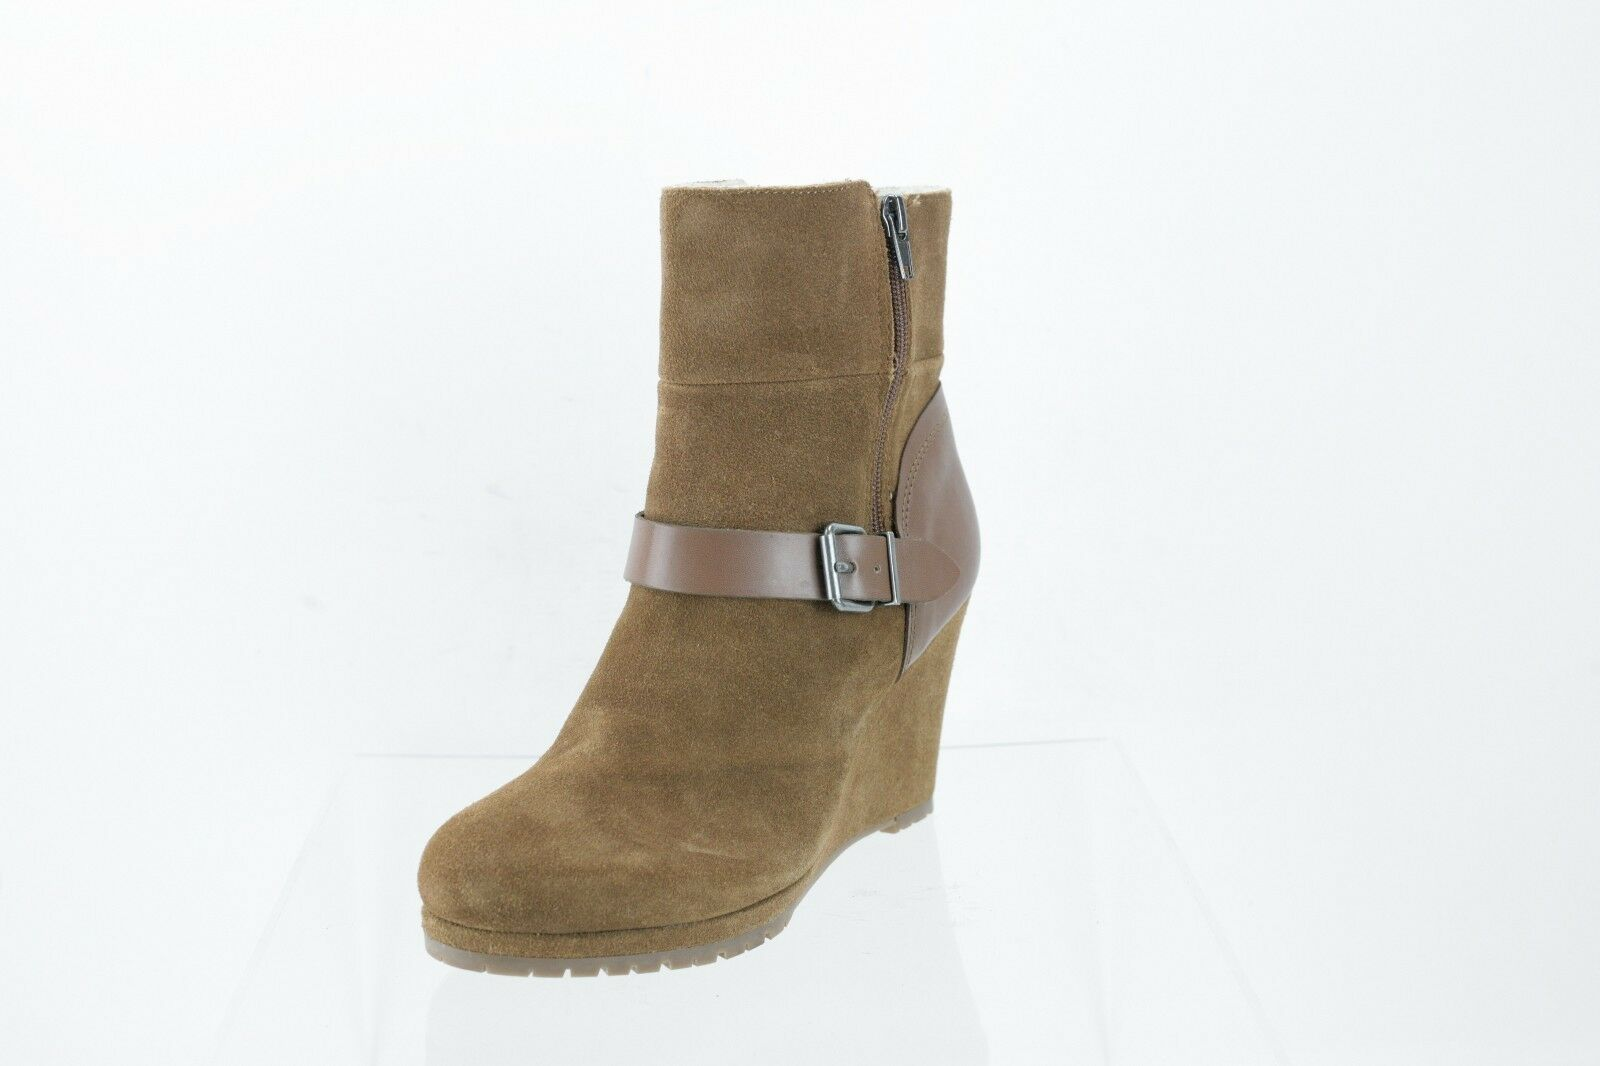 Dolce Vita Gwynn Brown Suede Ankle Boots Women's Shoes Size 8 M NEW RTL $220